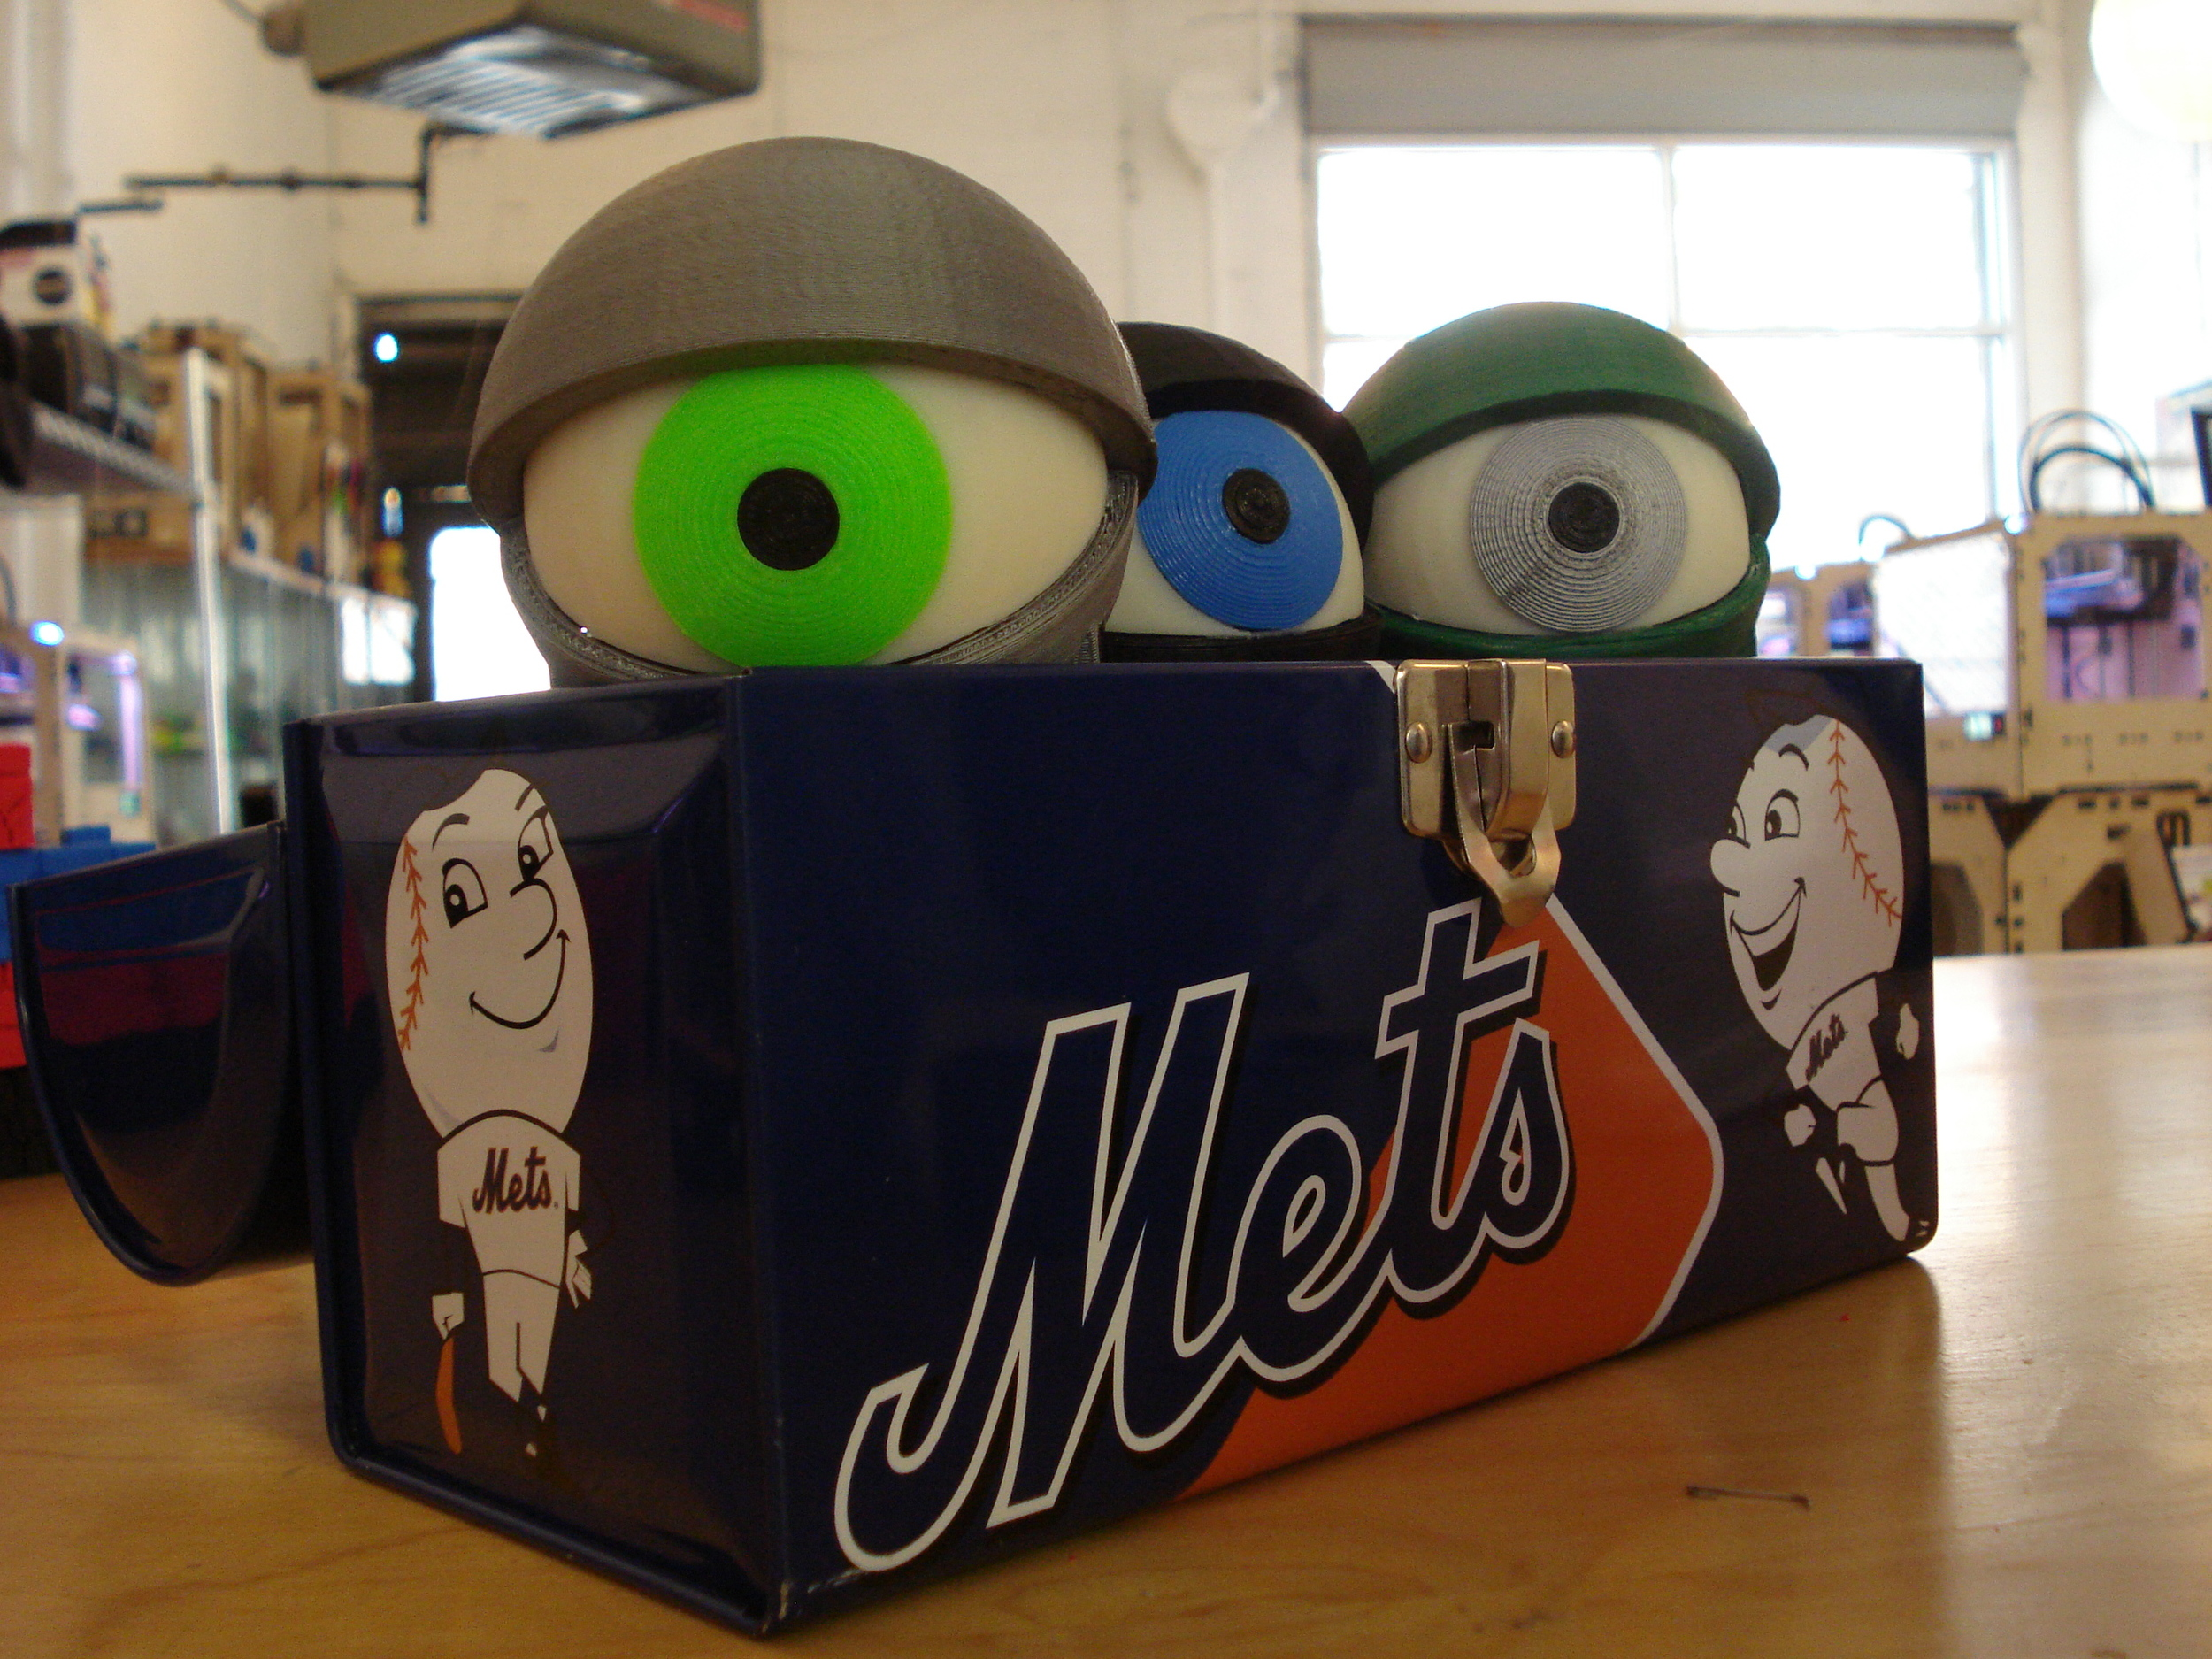 The Minions packed in their lunchbox. They're leaving  @makerbot  and heading to  @makerfairekc